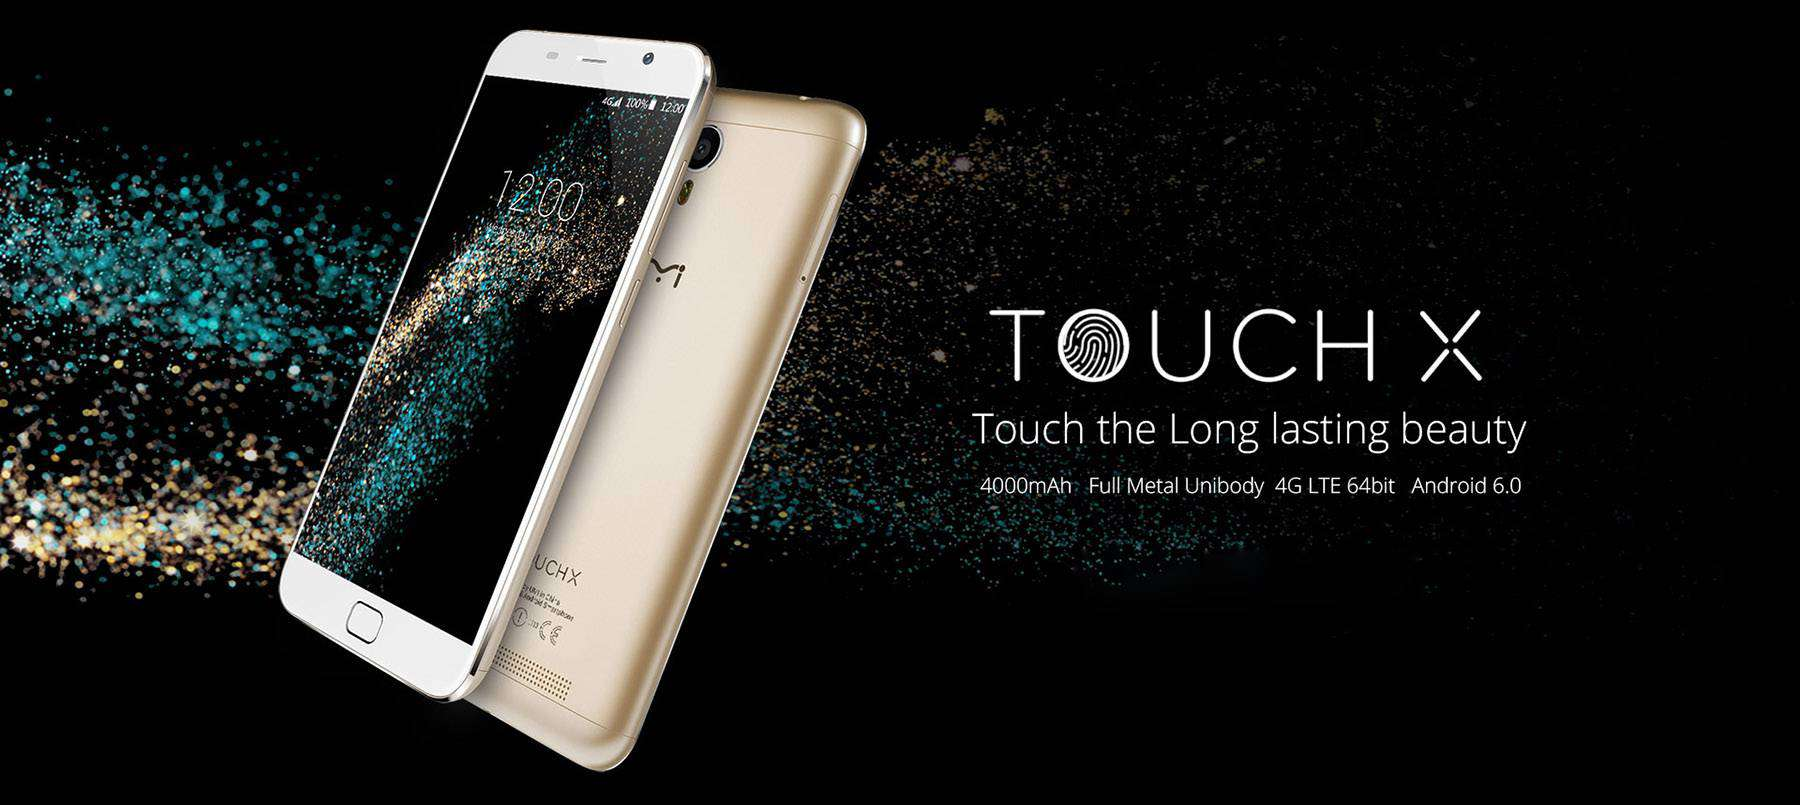 Umi Touch X GB 05